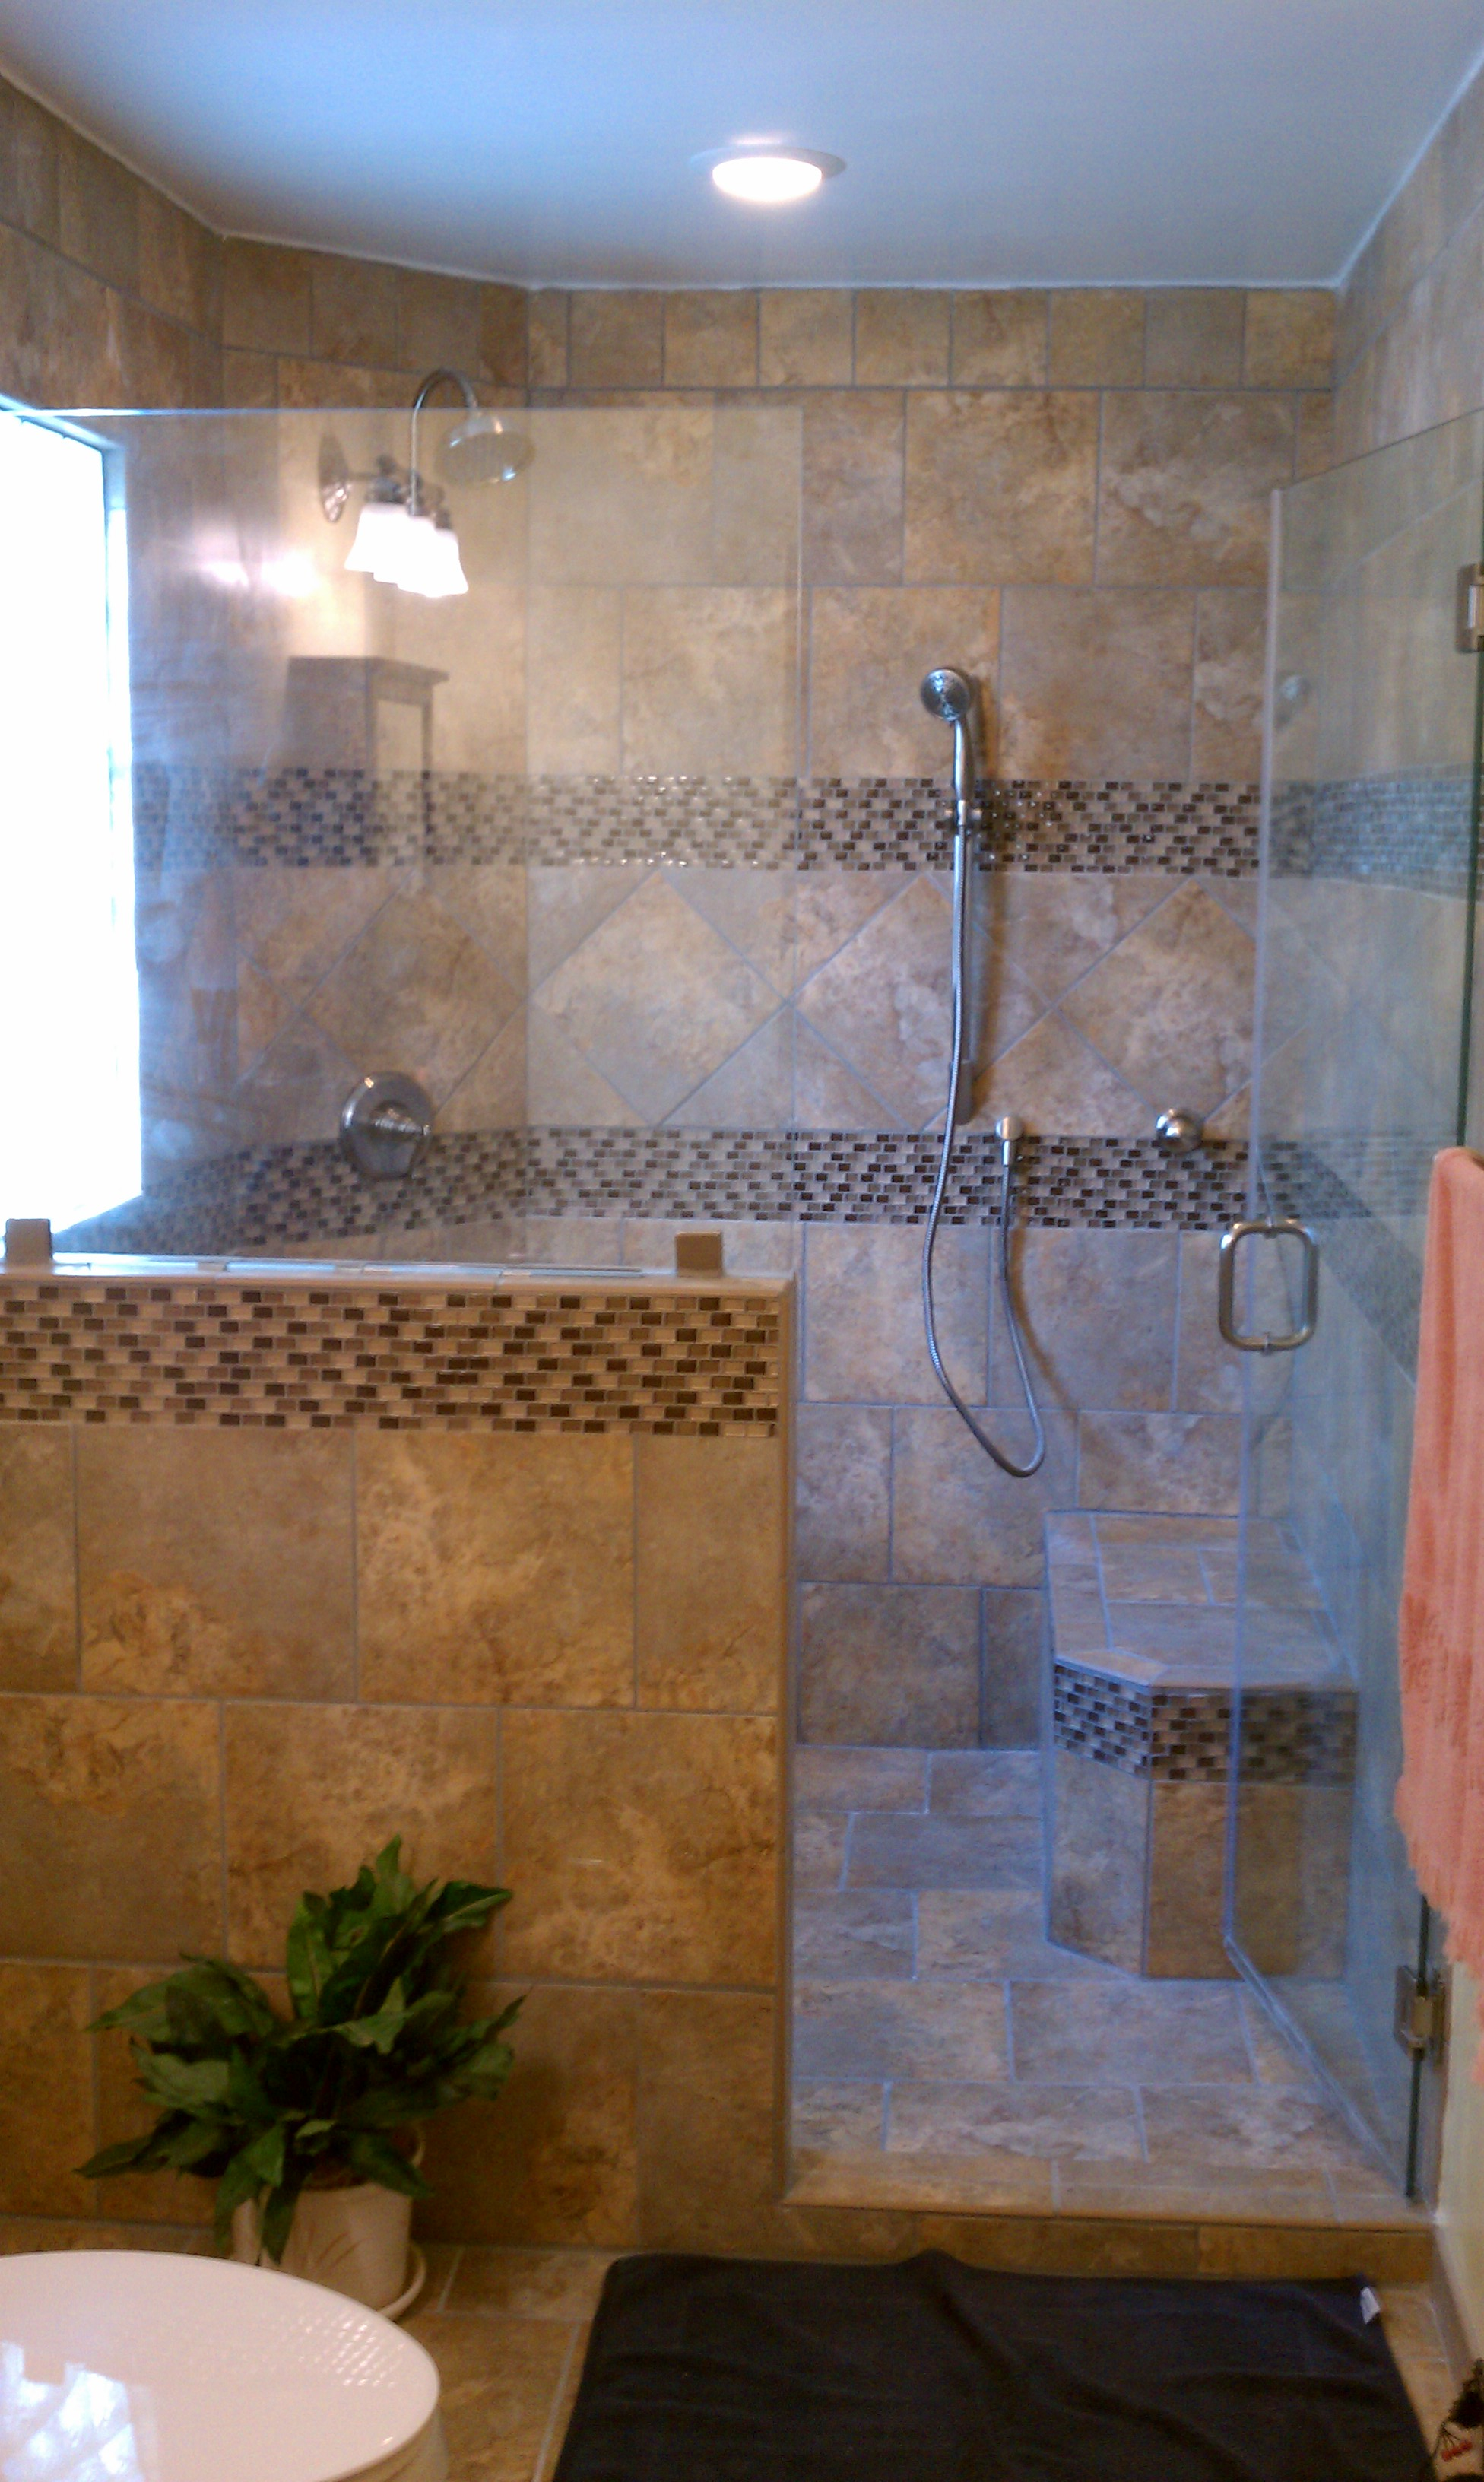 Value Remodelers And Handyman Serices Is An Archadeck Of Charlotte Company  That Totally Remodeled This Master